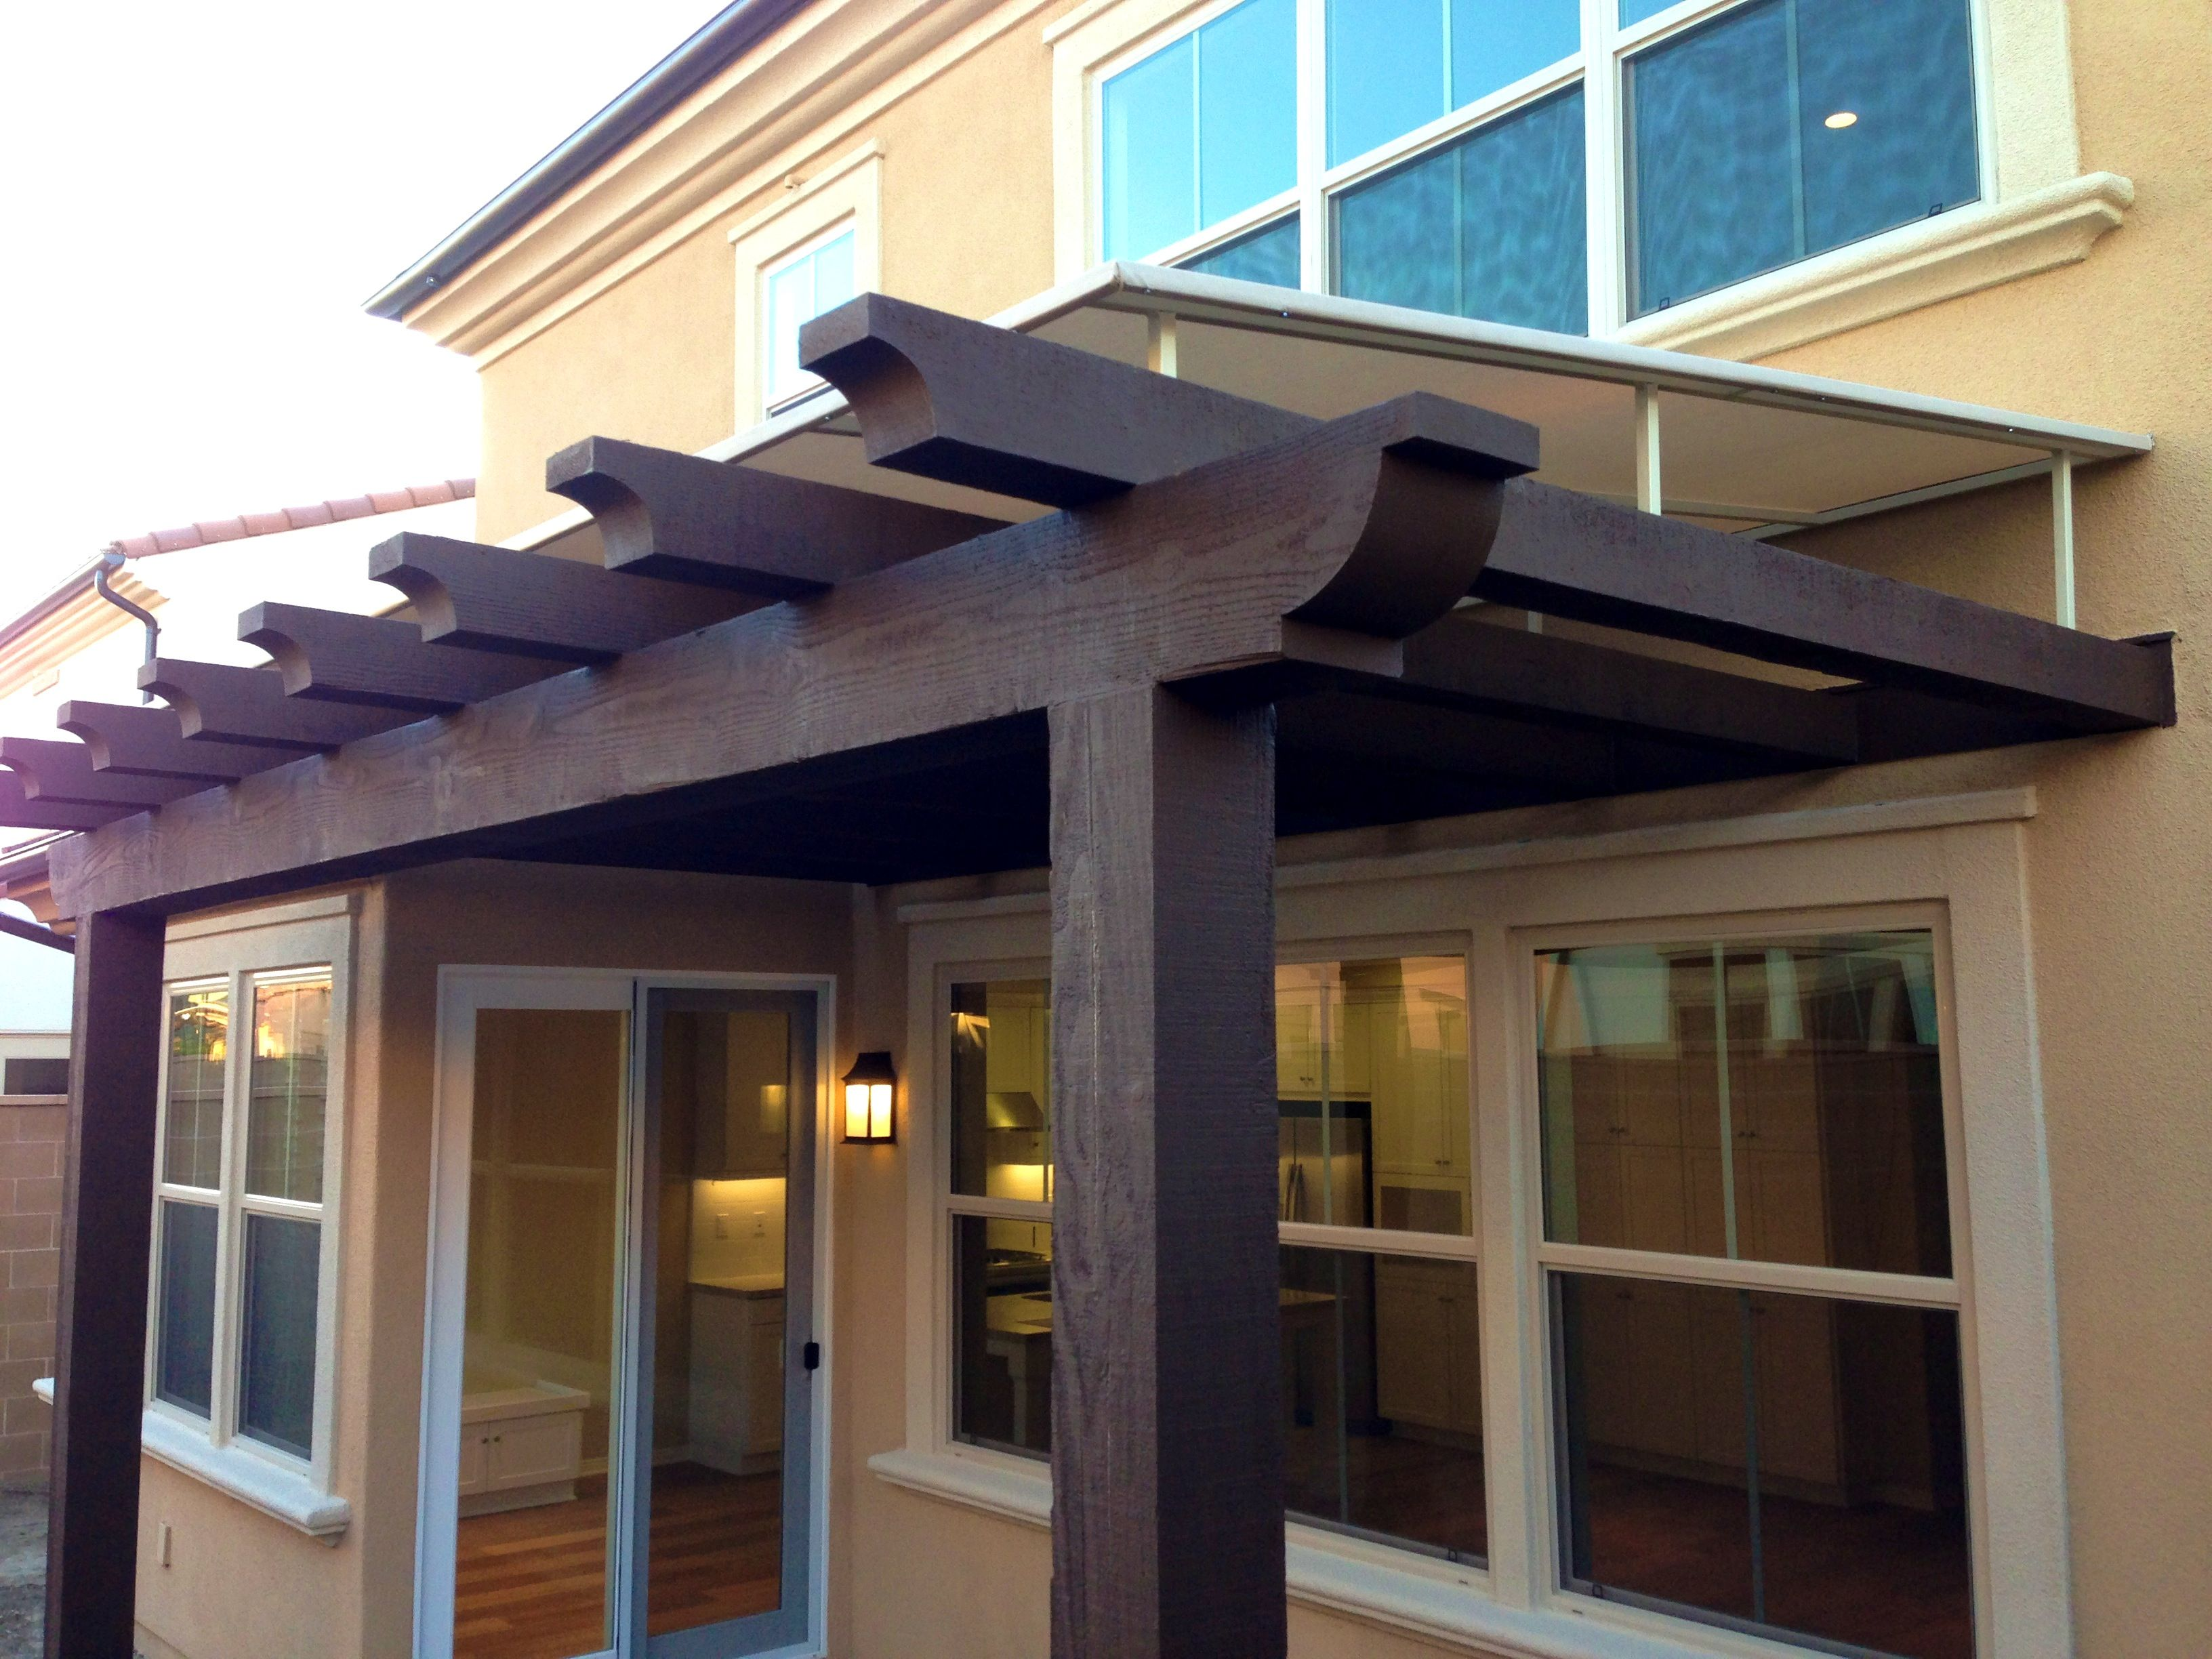 a awning aluminum over decks llc building awnings deck construction portfolio custom services view and allied web